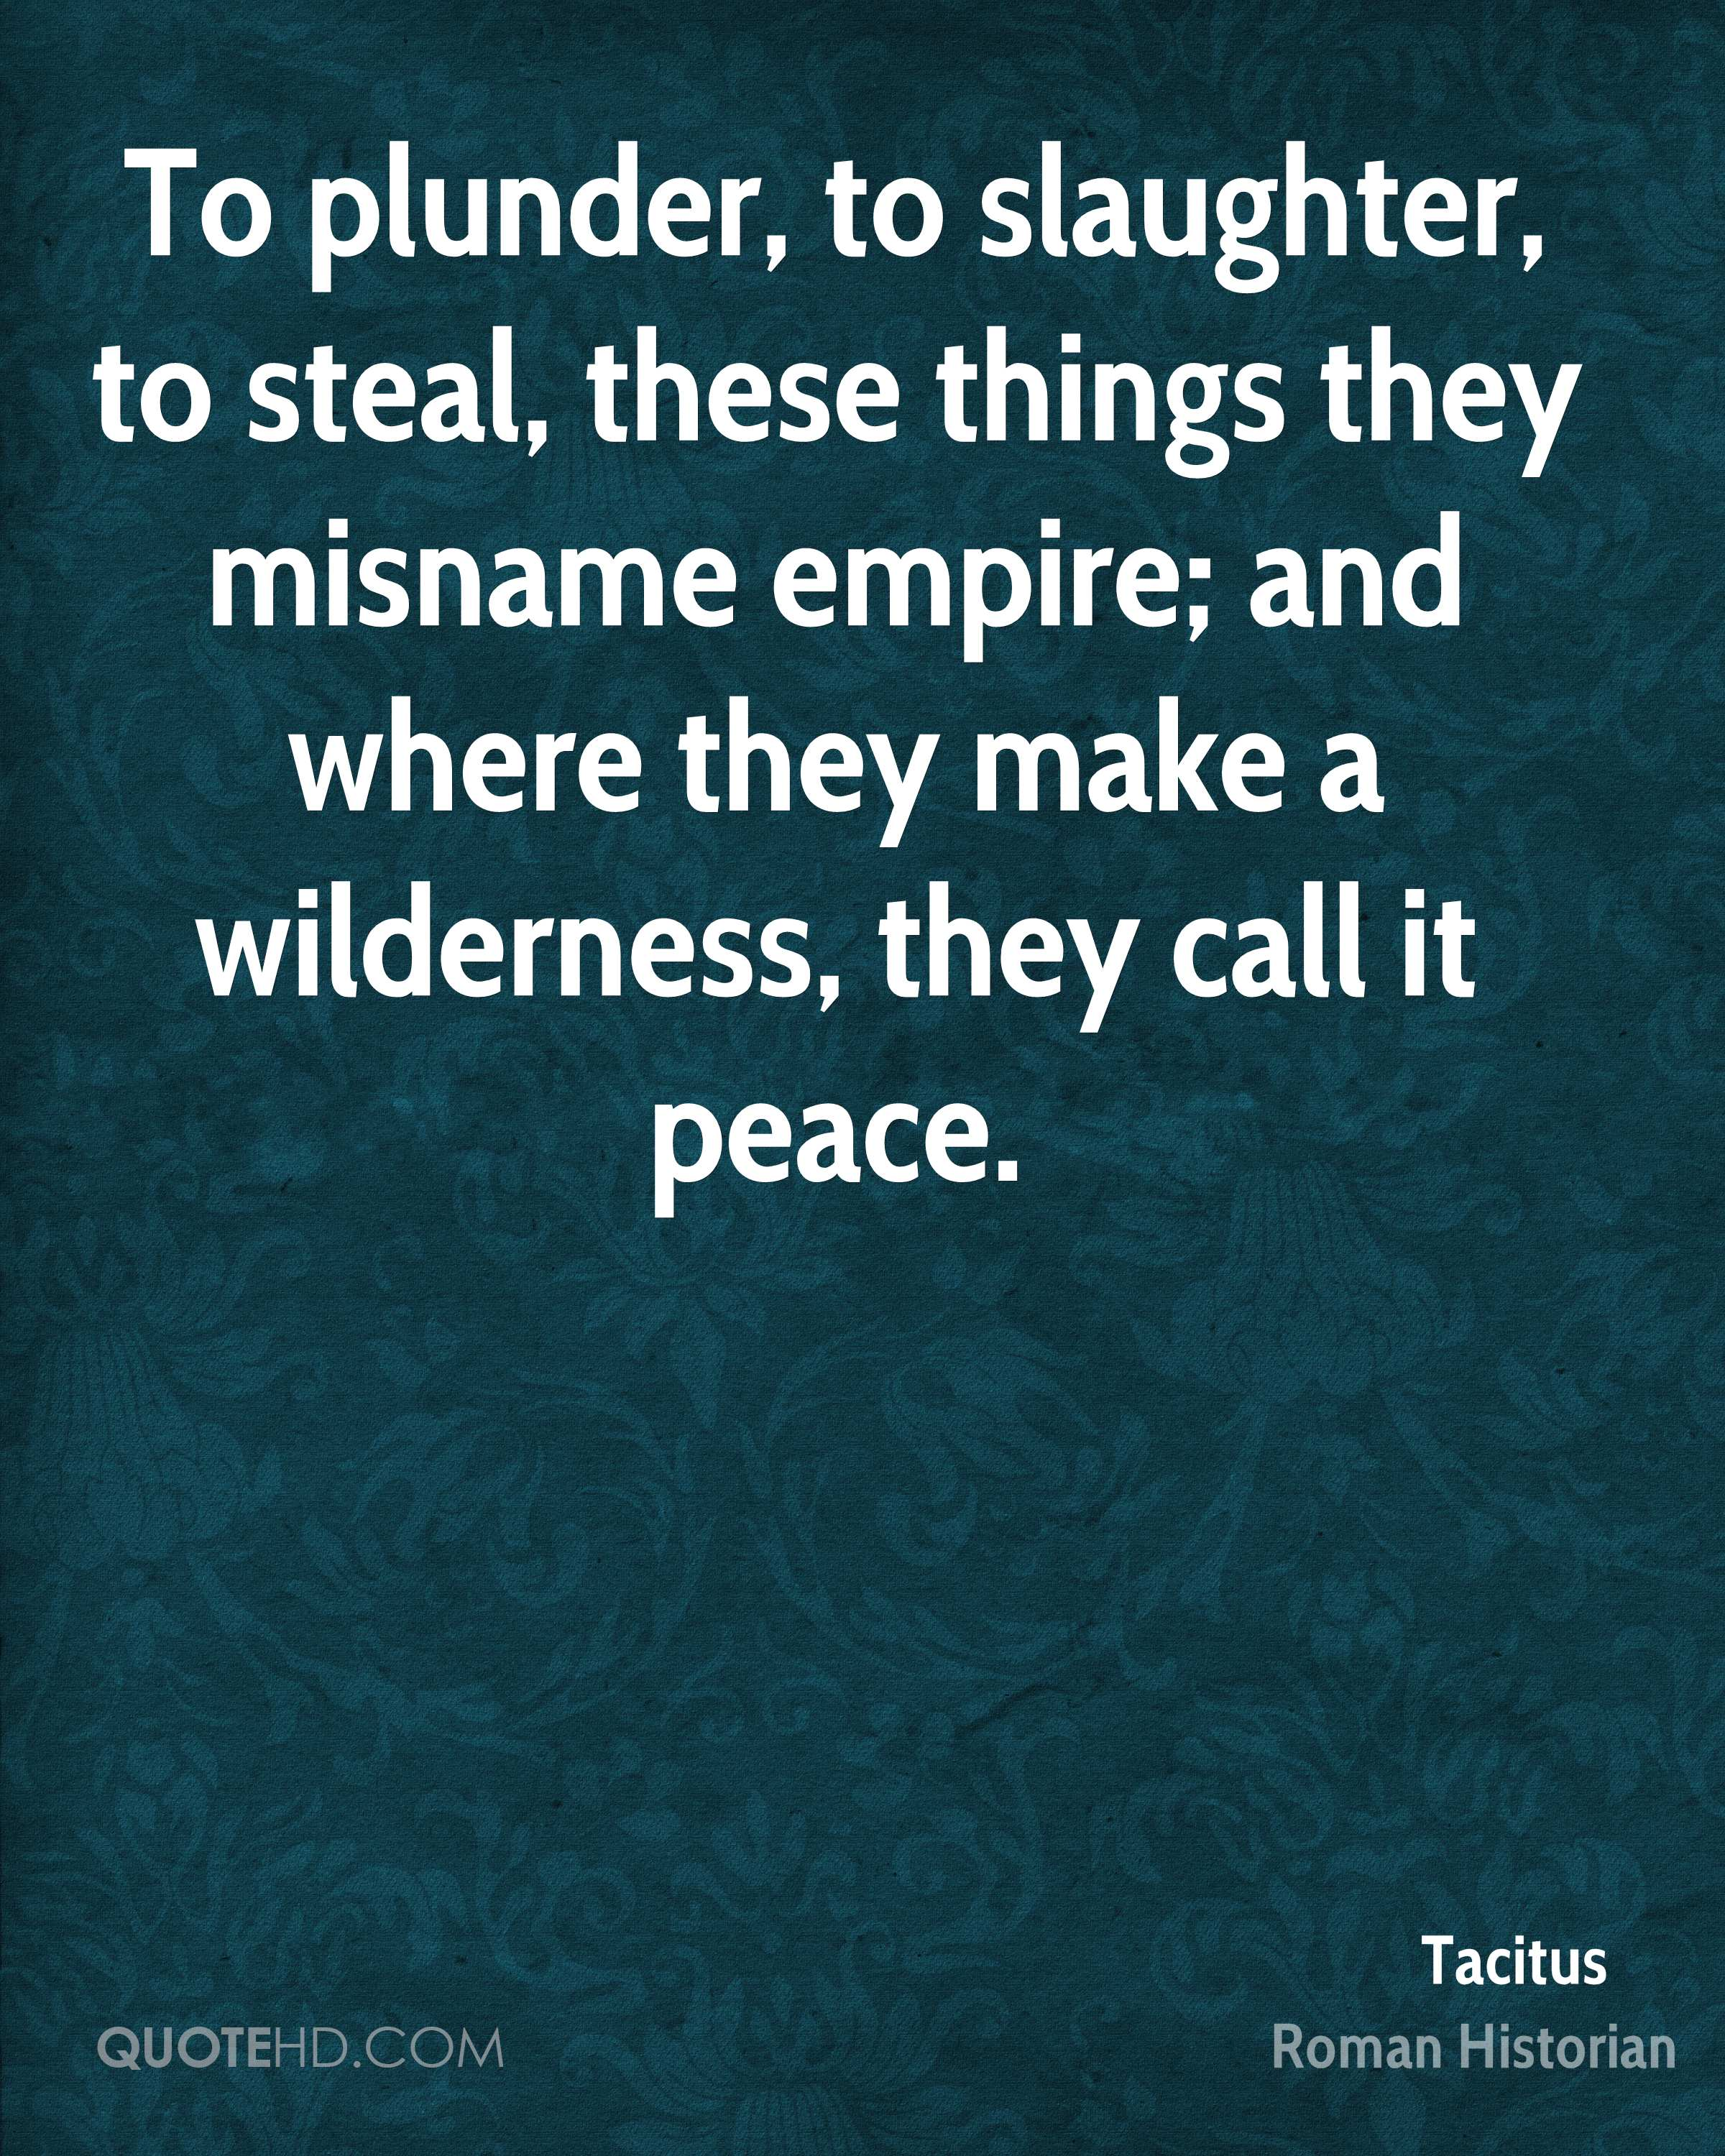 To plunder, to slaughter, to steal, these things they misname empire; and where they make a wilderness, they call it peace.